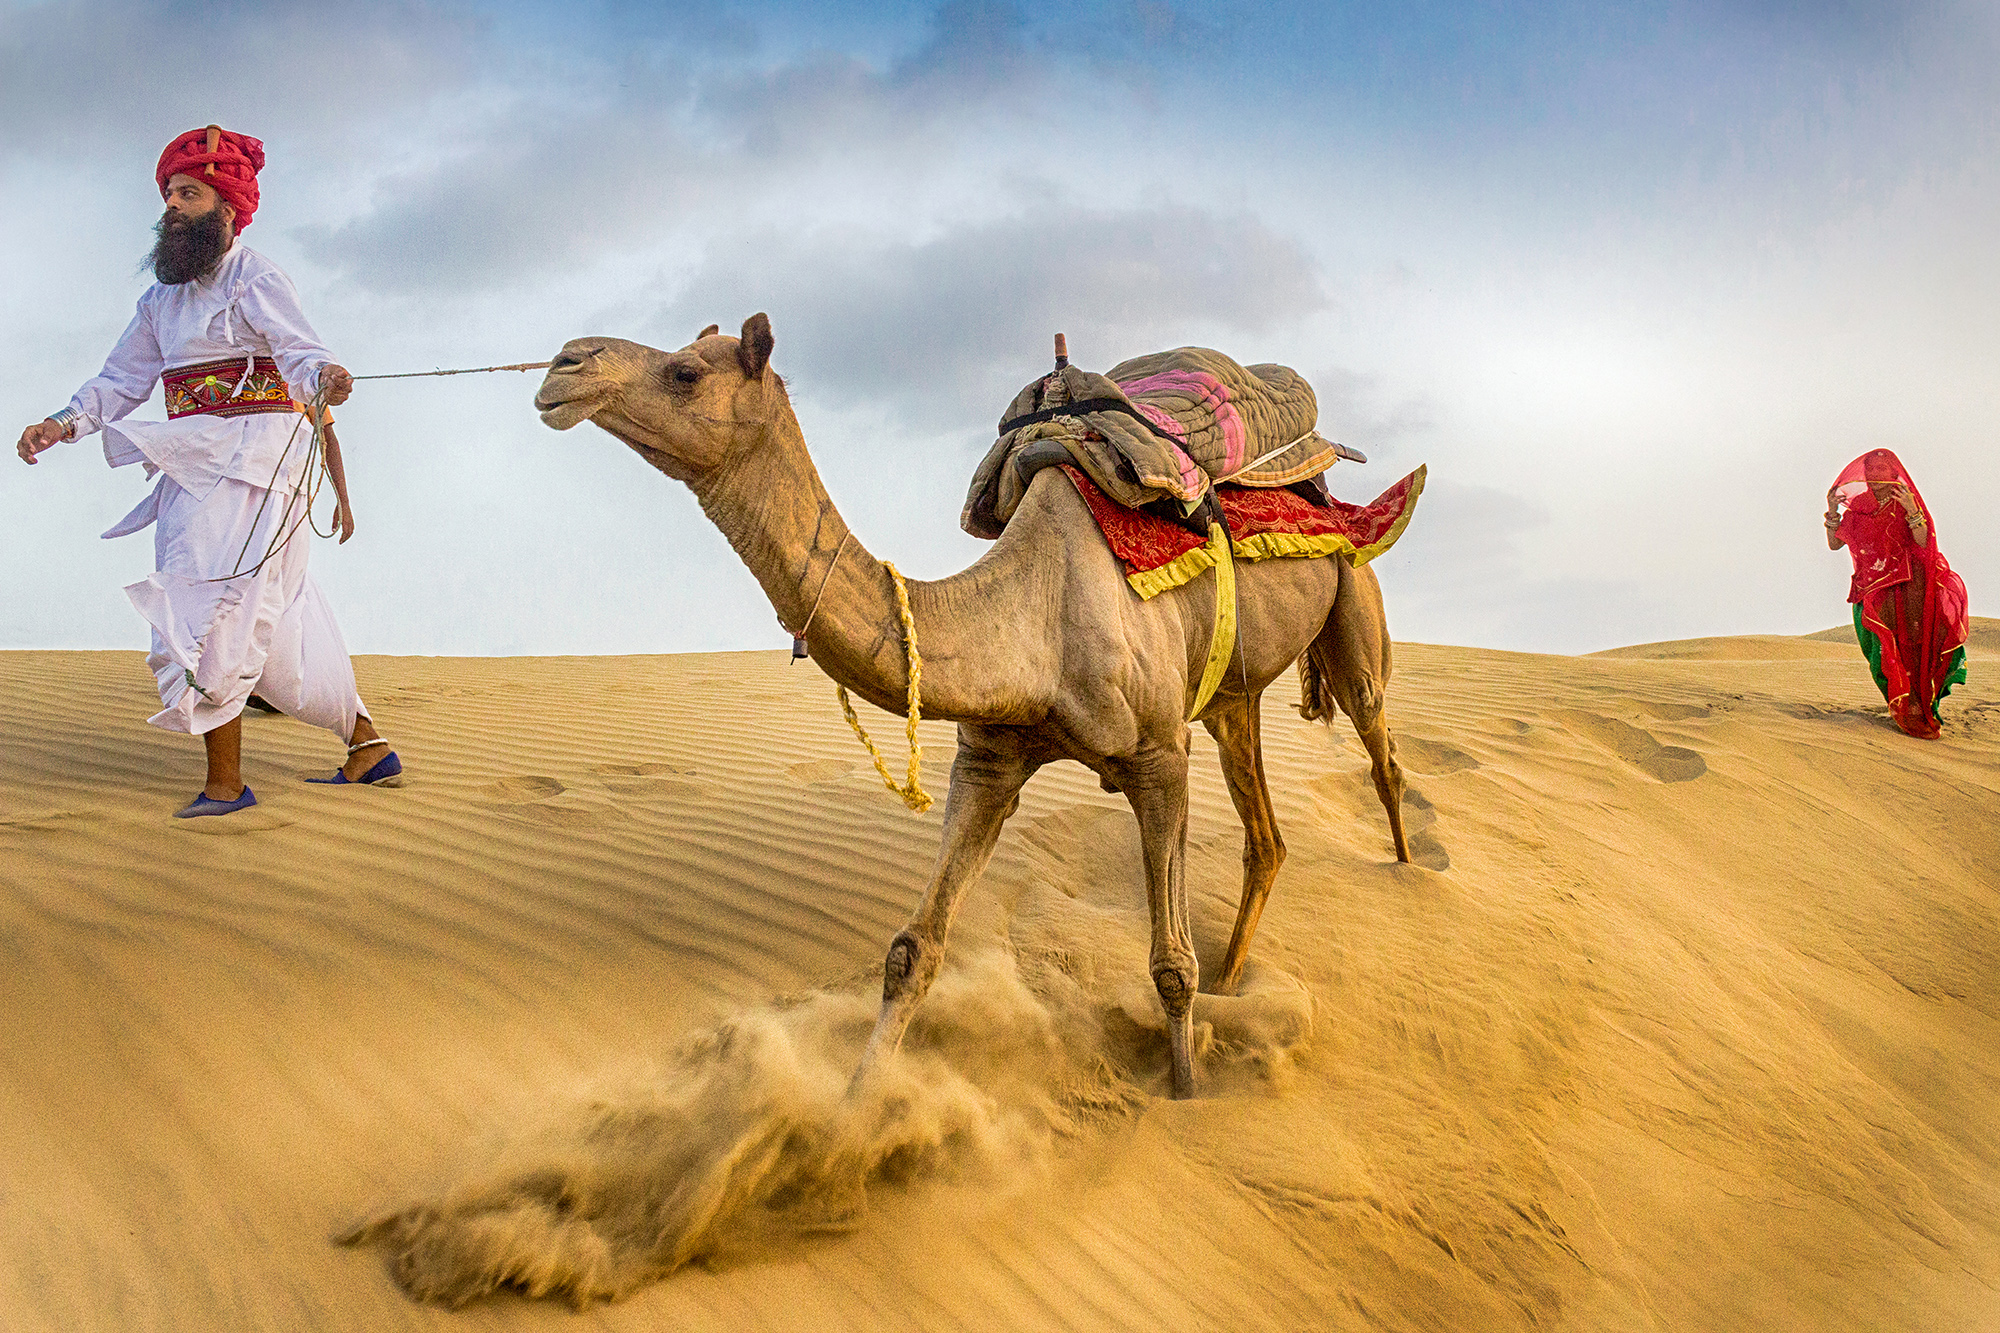 Its a decisive moment. They were coming to our side & all of the sudden camel came to the edge of sand dune. At that end the dune wasn't firm enough & camel tried to keep its grip on that too. Camel slipped a little & that movement is here.